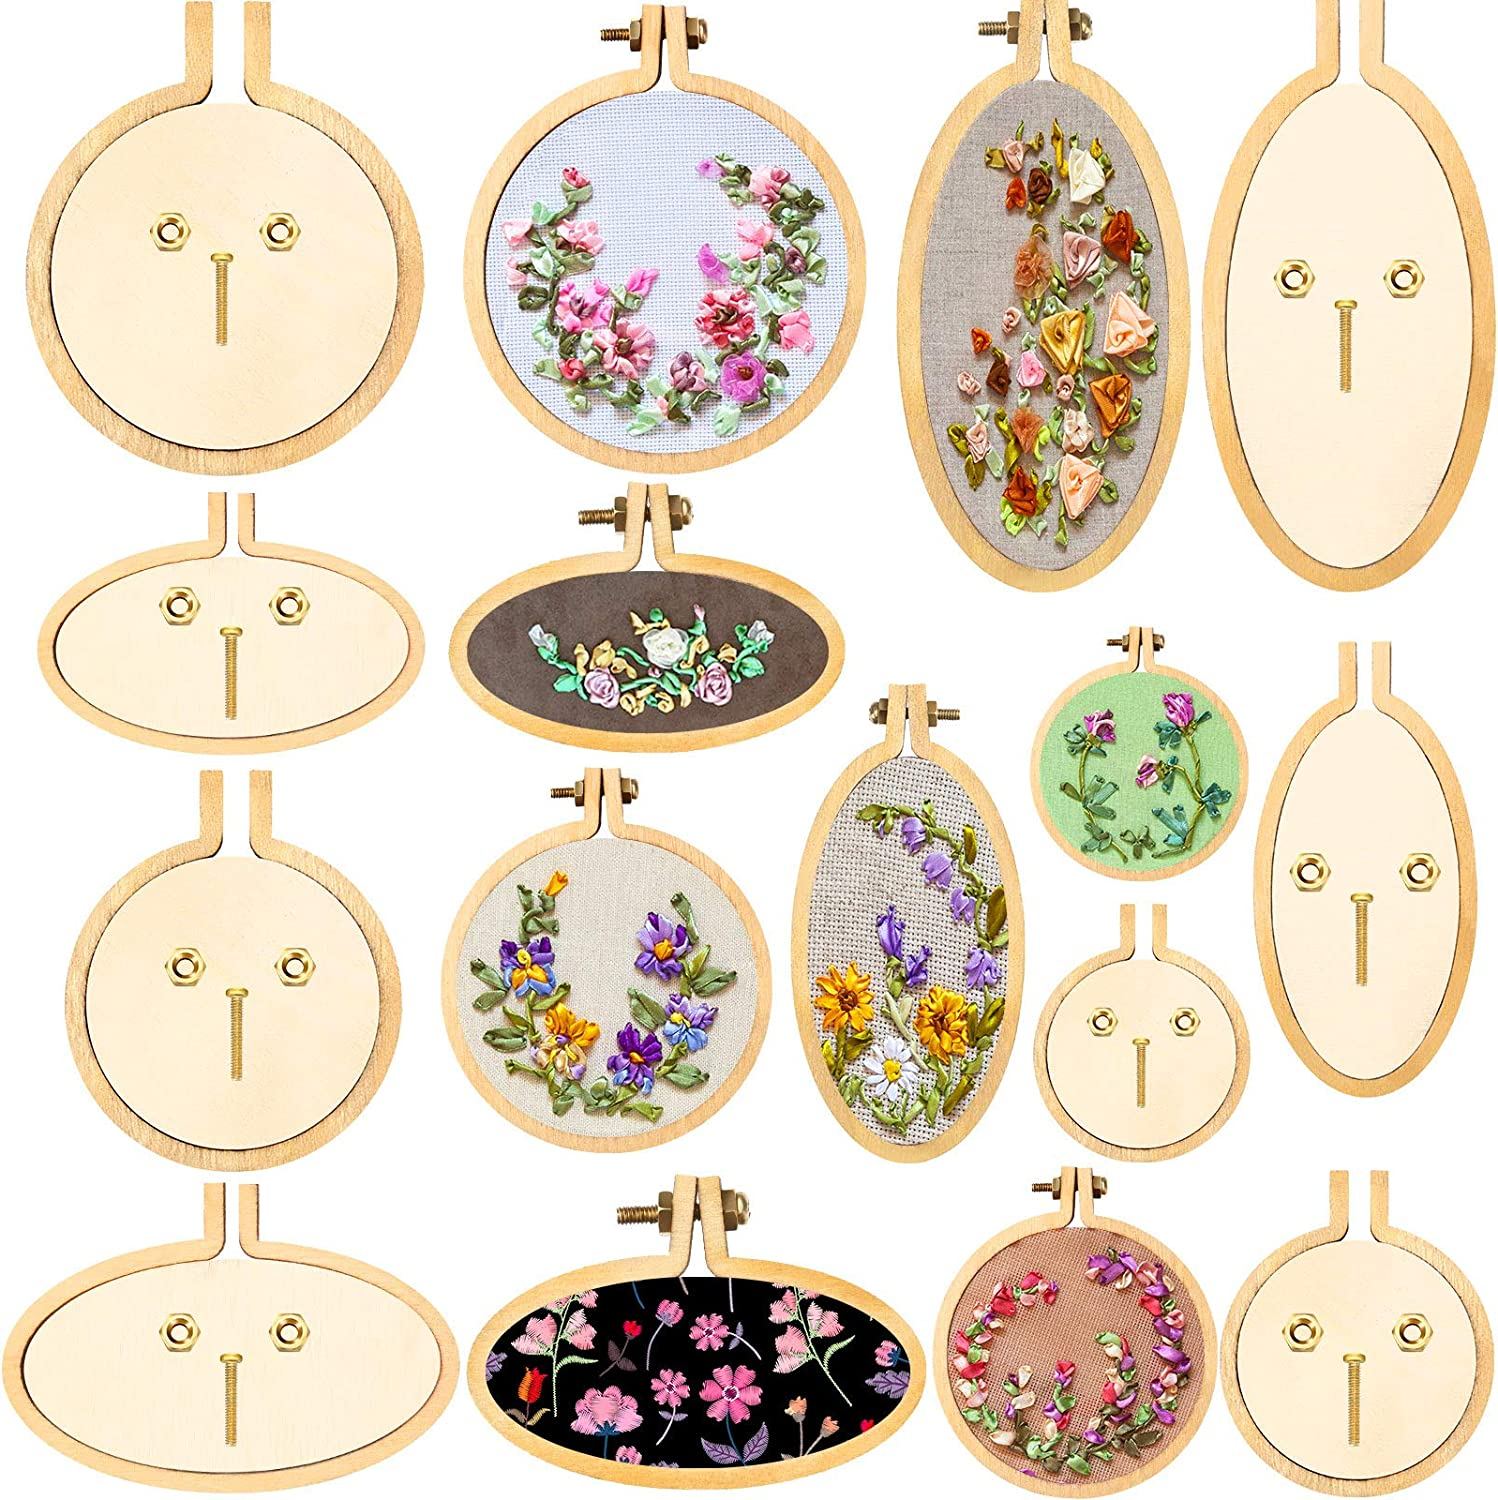 Selling and selling Mini Embroidery Hoop Selling rankings Wooden Stitch Ring Crossing